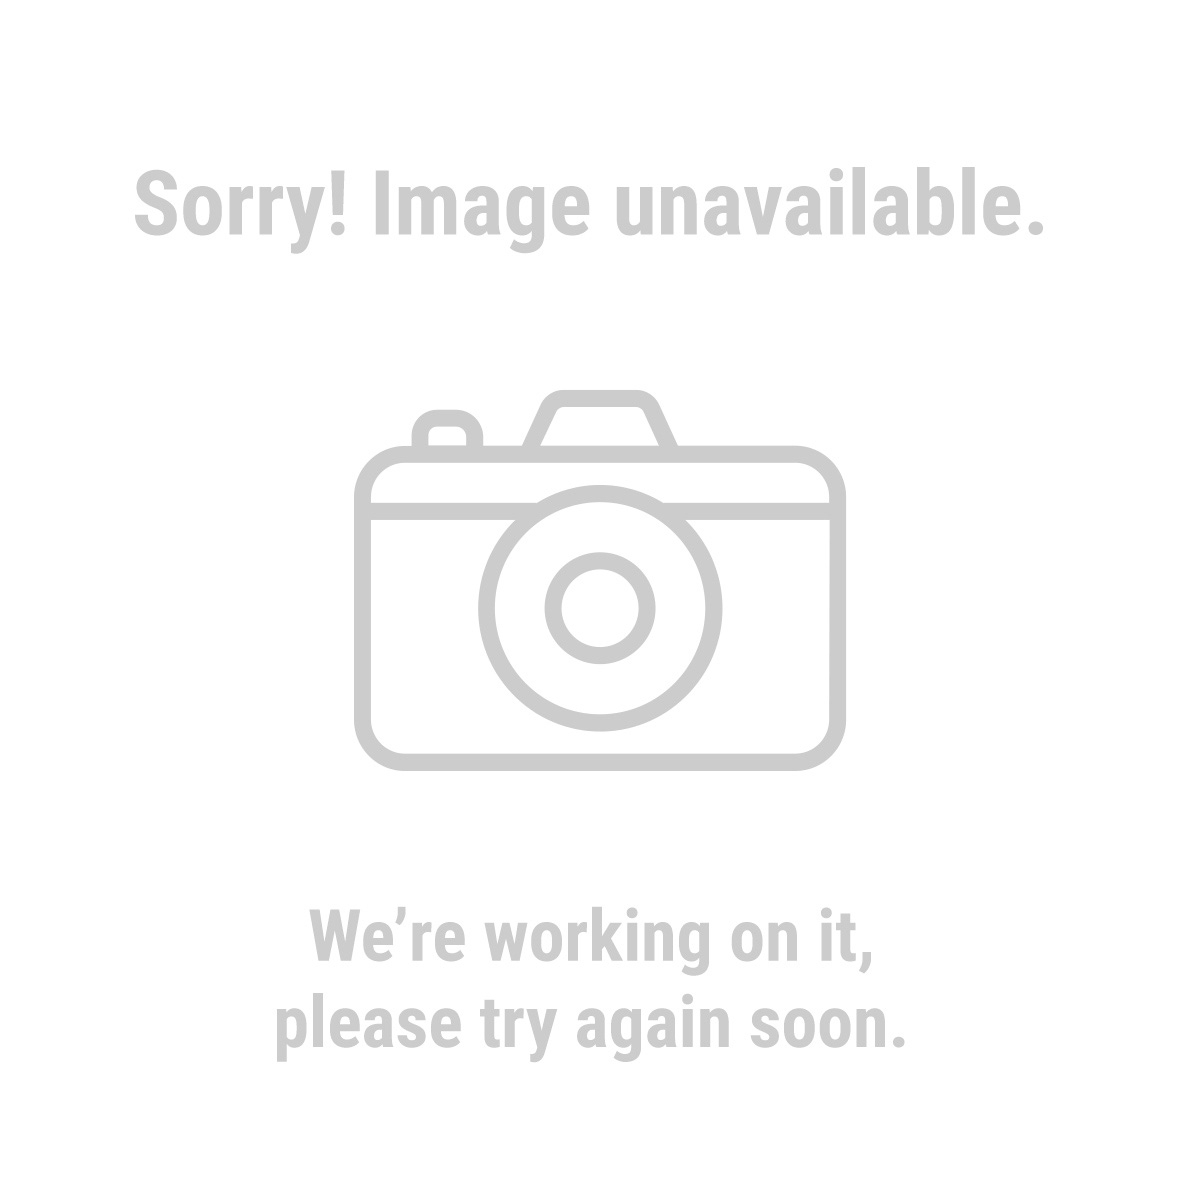 Haul Master Automotive 69853 Solid Rubber Wheel Chock